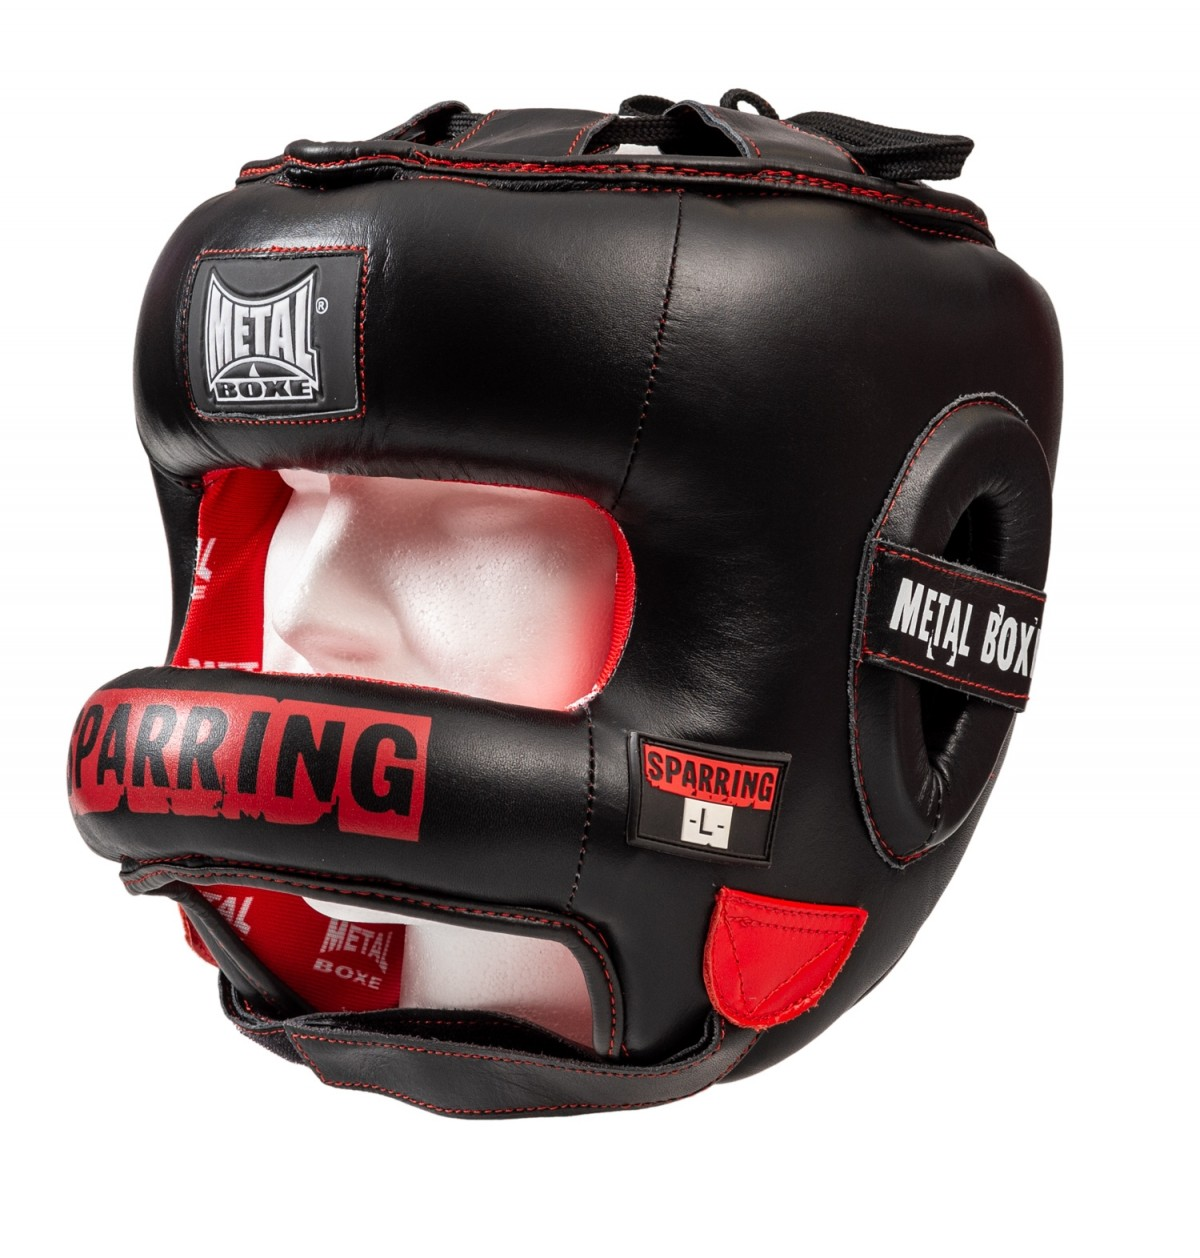 casque_boxe_sparring_metal_boxe